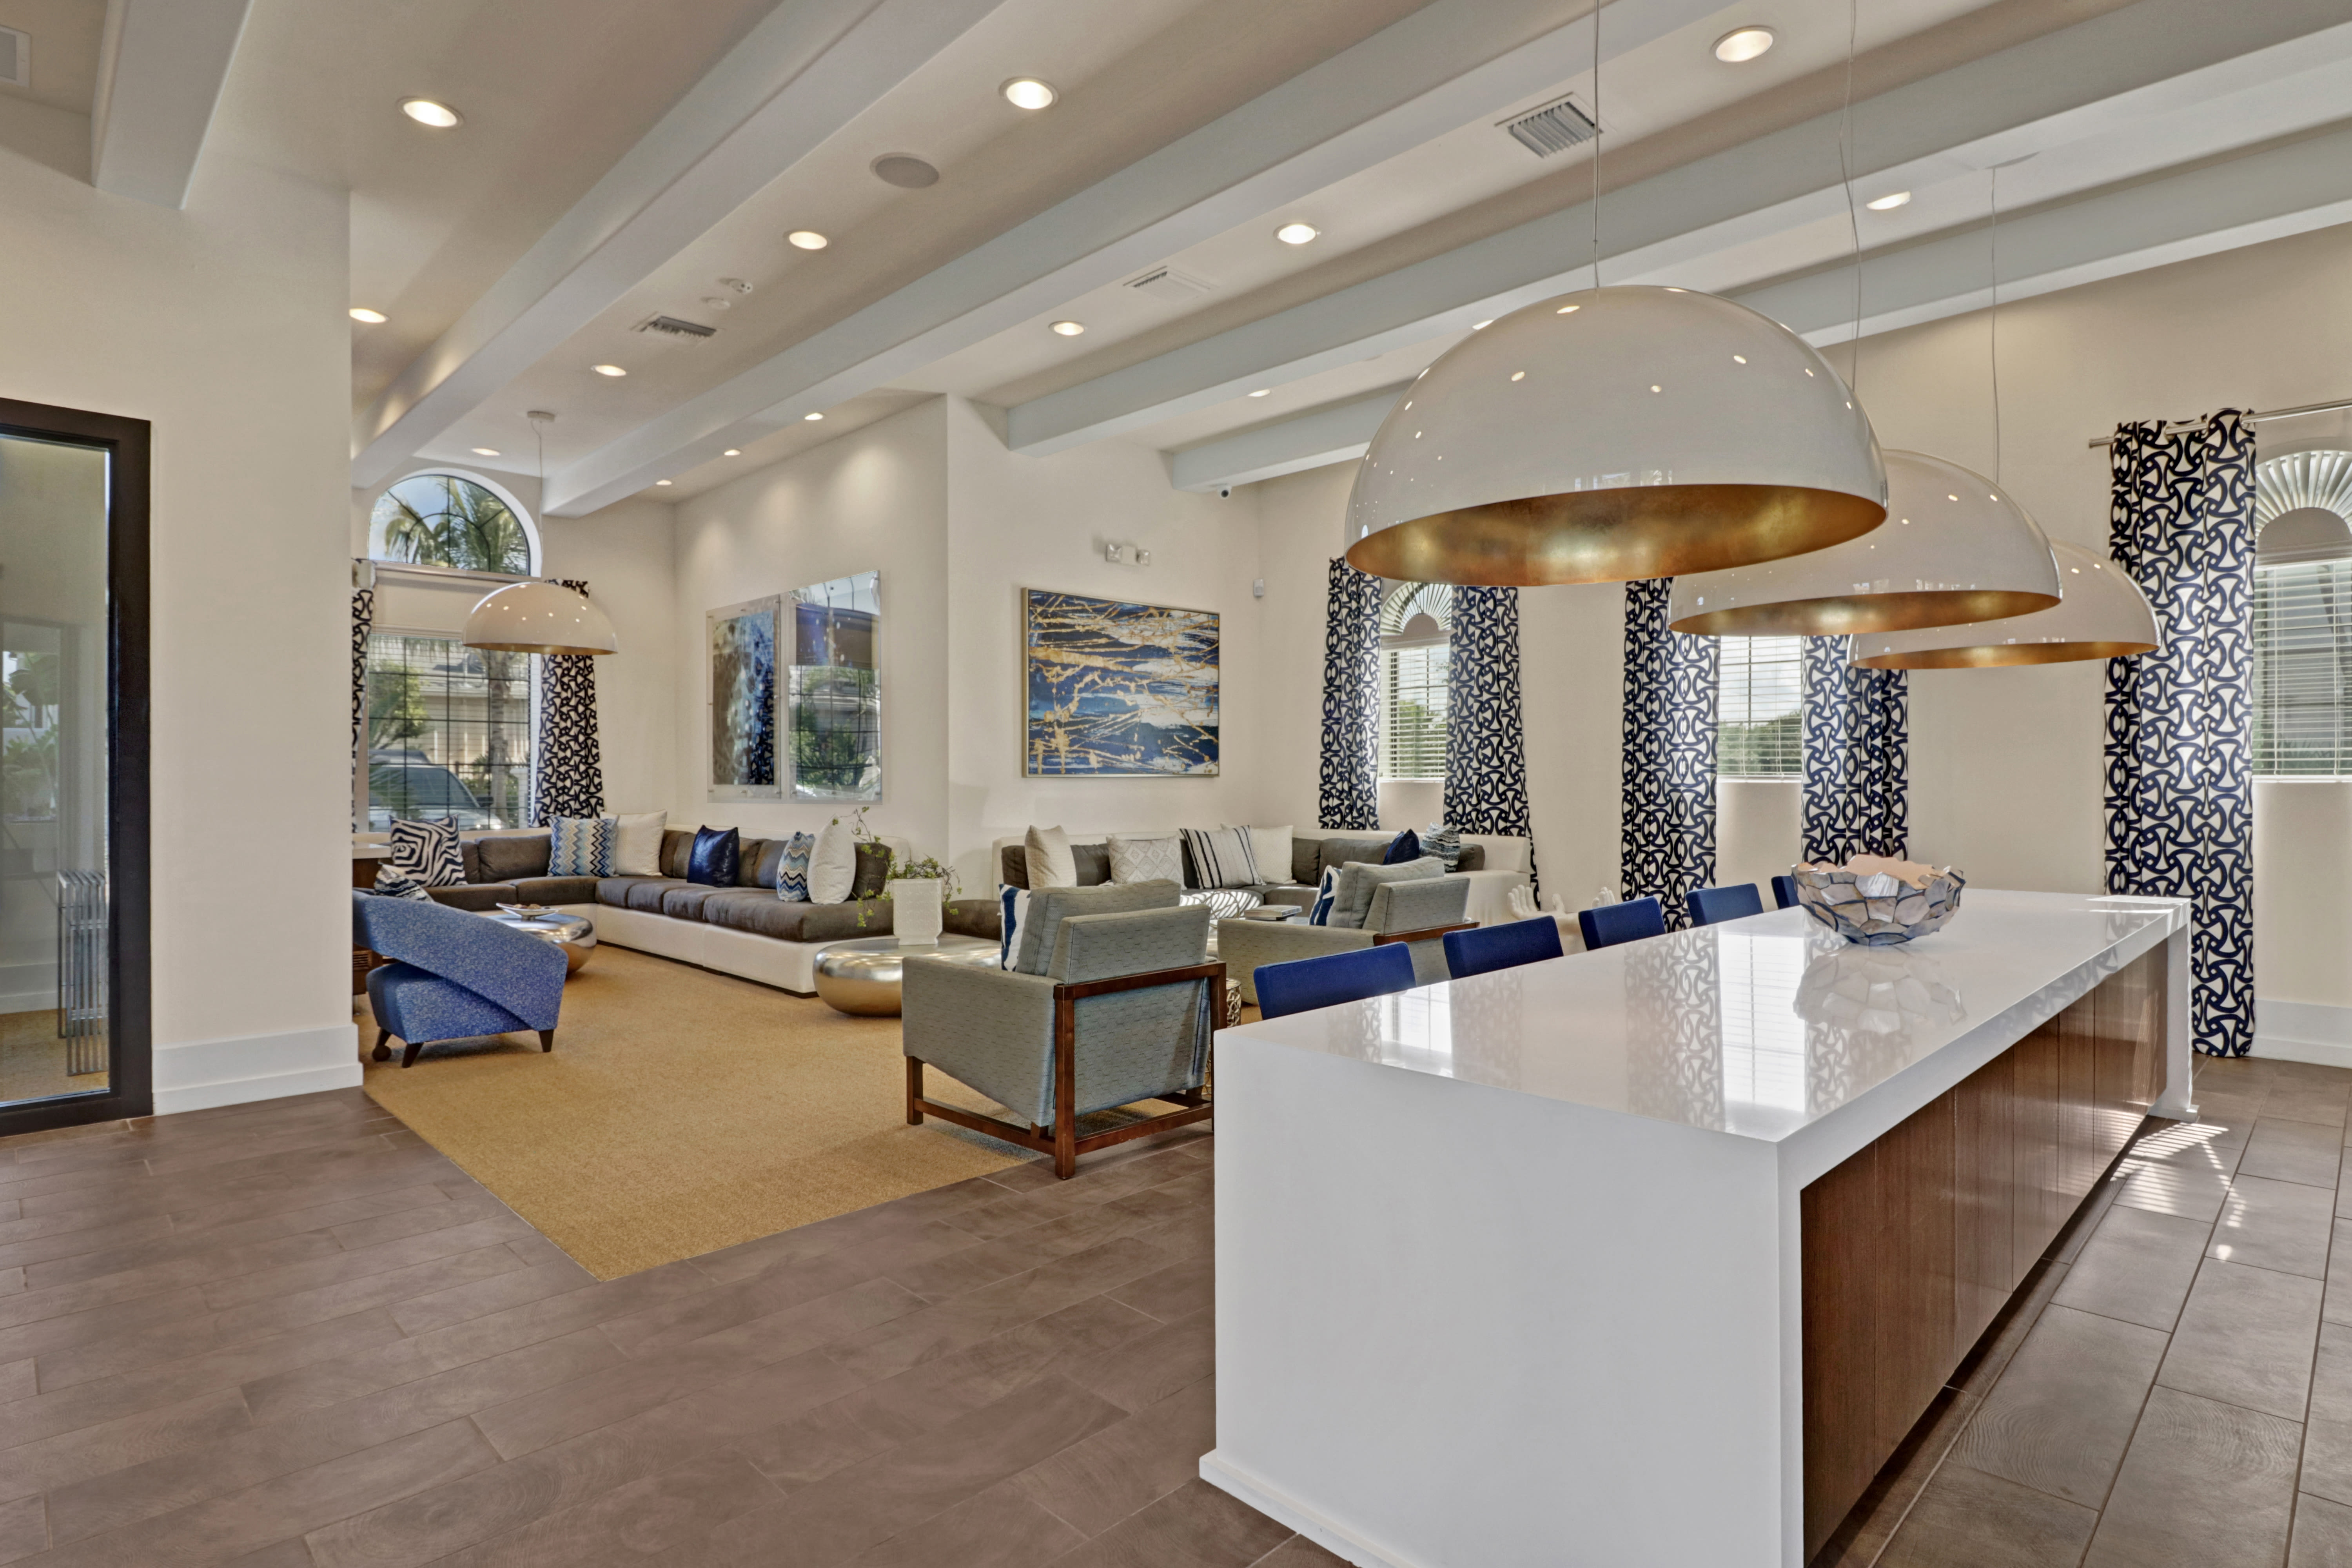 Spacious clubhouse interior at Linden Pointe in Pompano Beach, Florida features tall ceilings